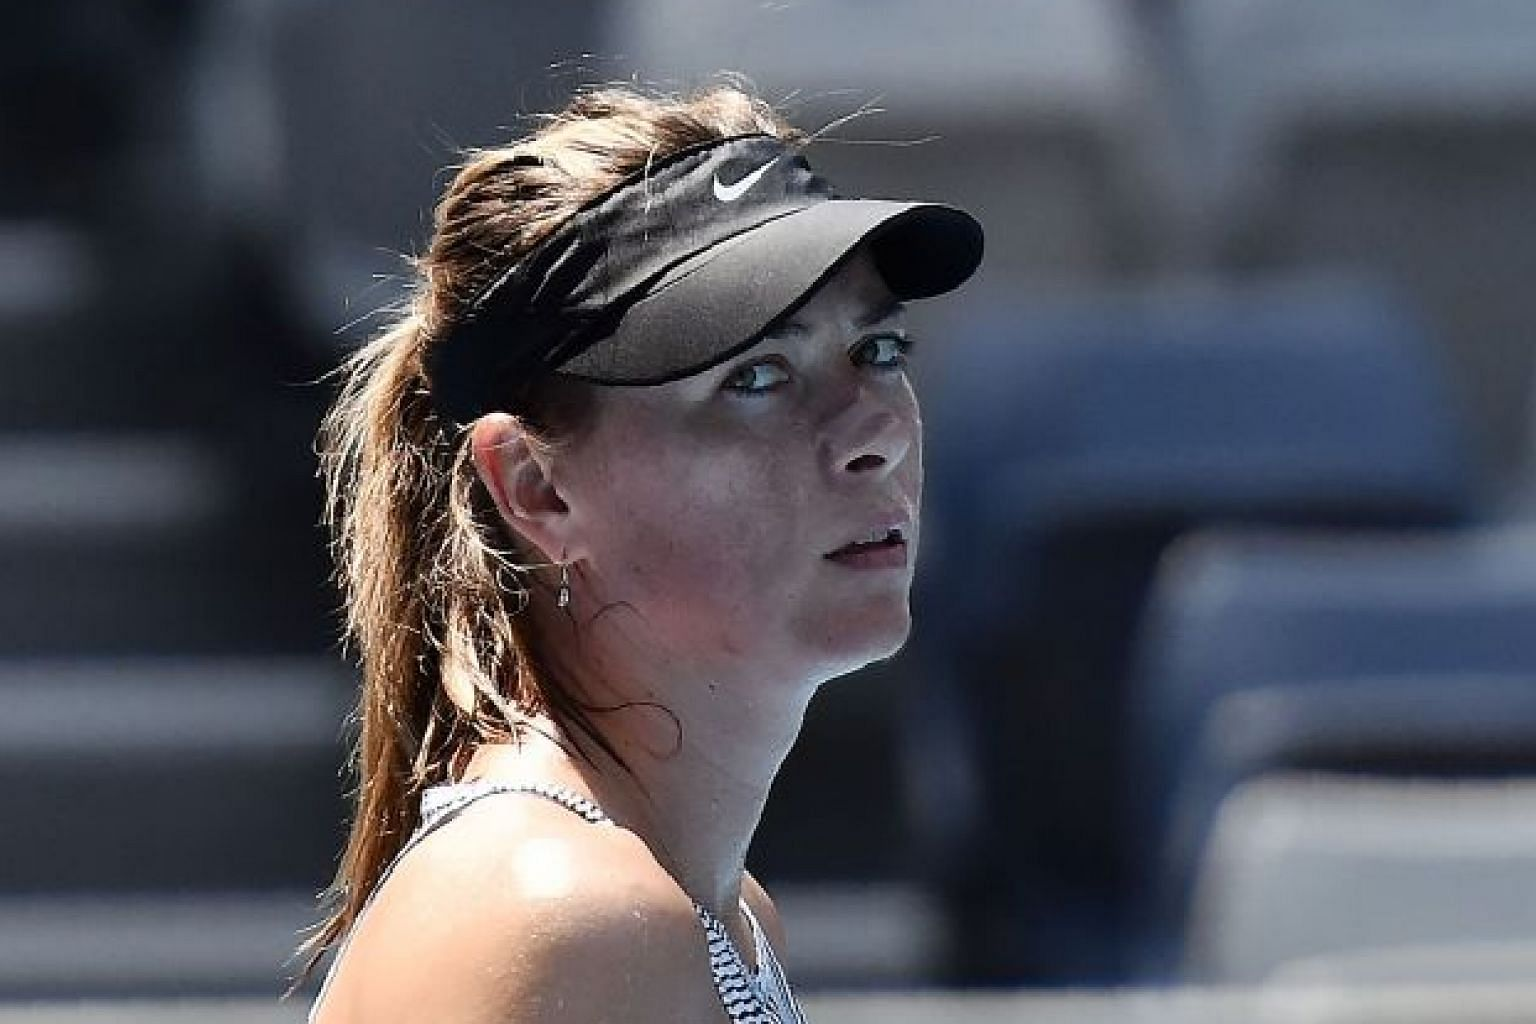 Russian tennis star Maria Sharapova during a practice session at this year's Australian Open. She is calling time on the sport after winning five Grand Slam titles and earning US$38.8 million in career prize money.